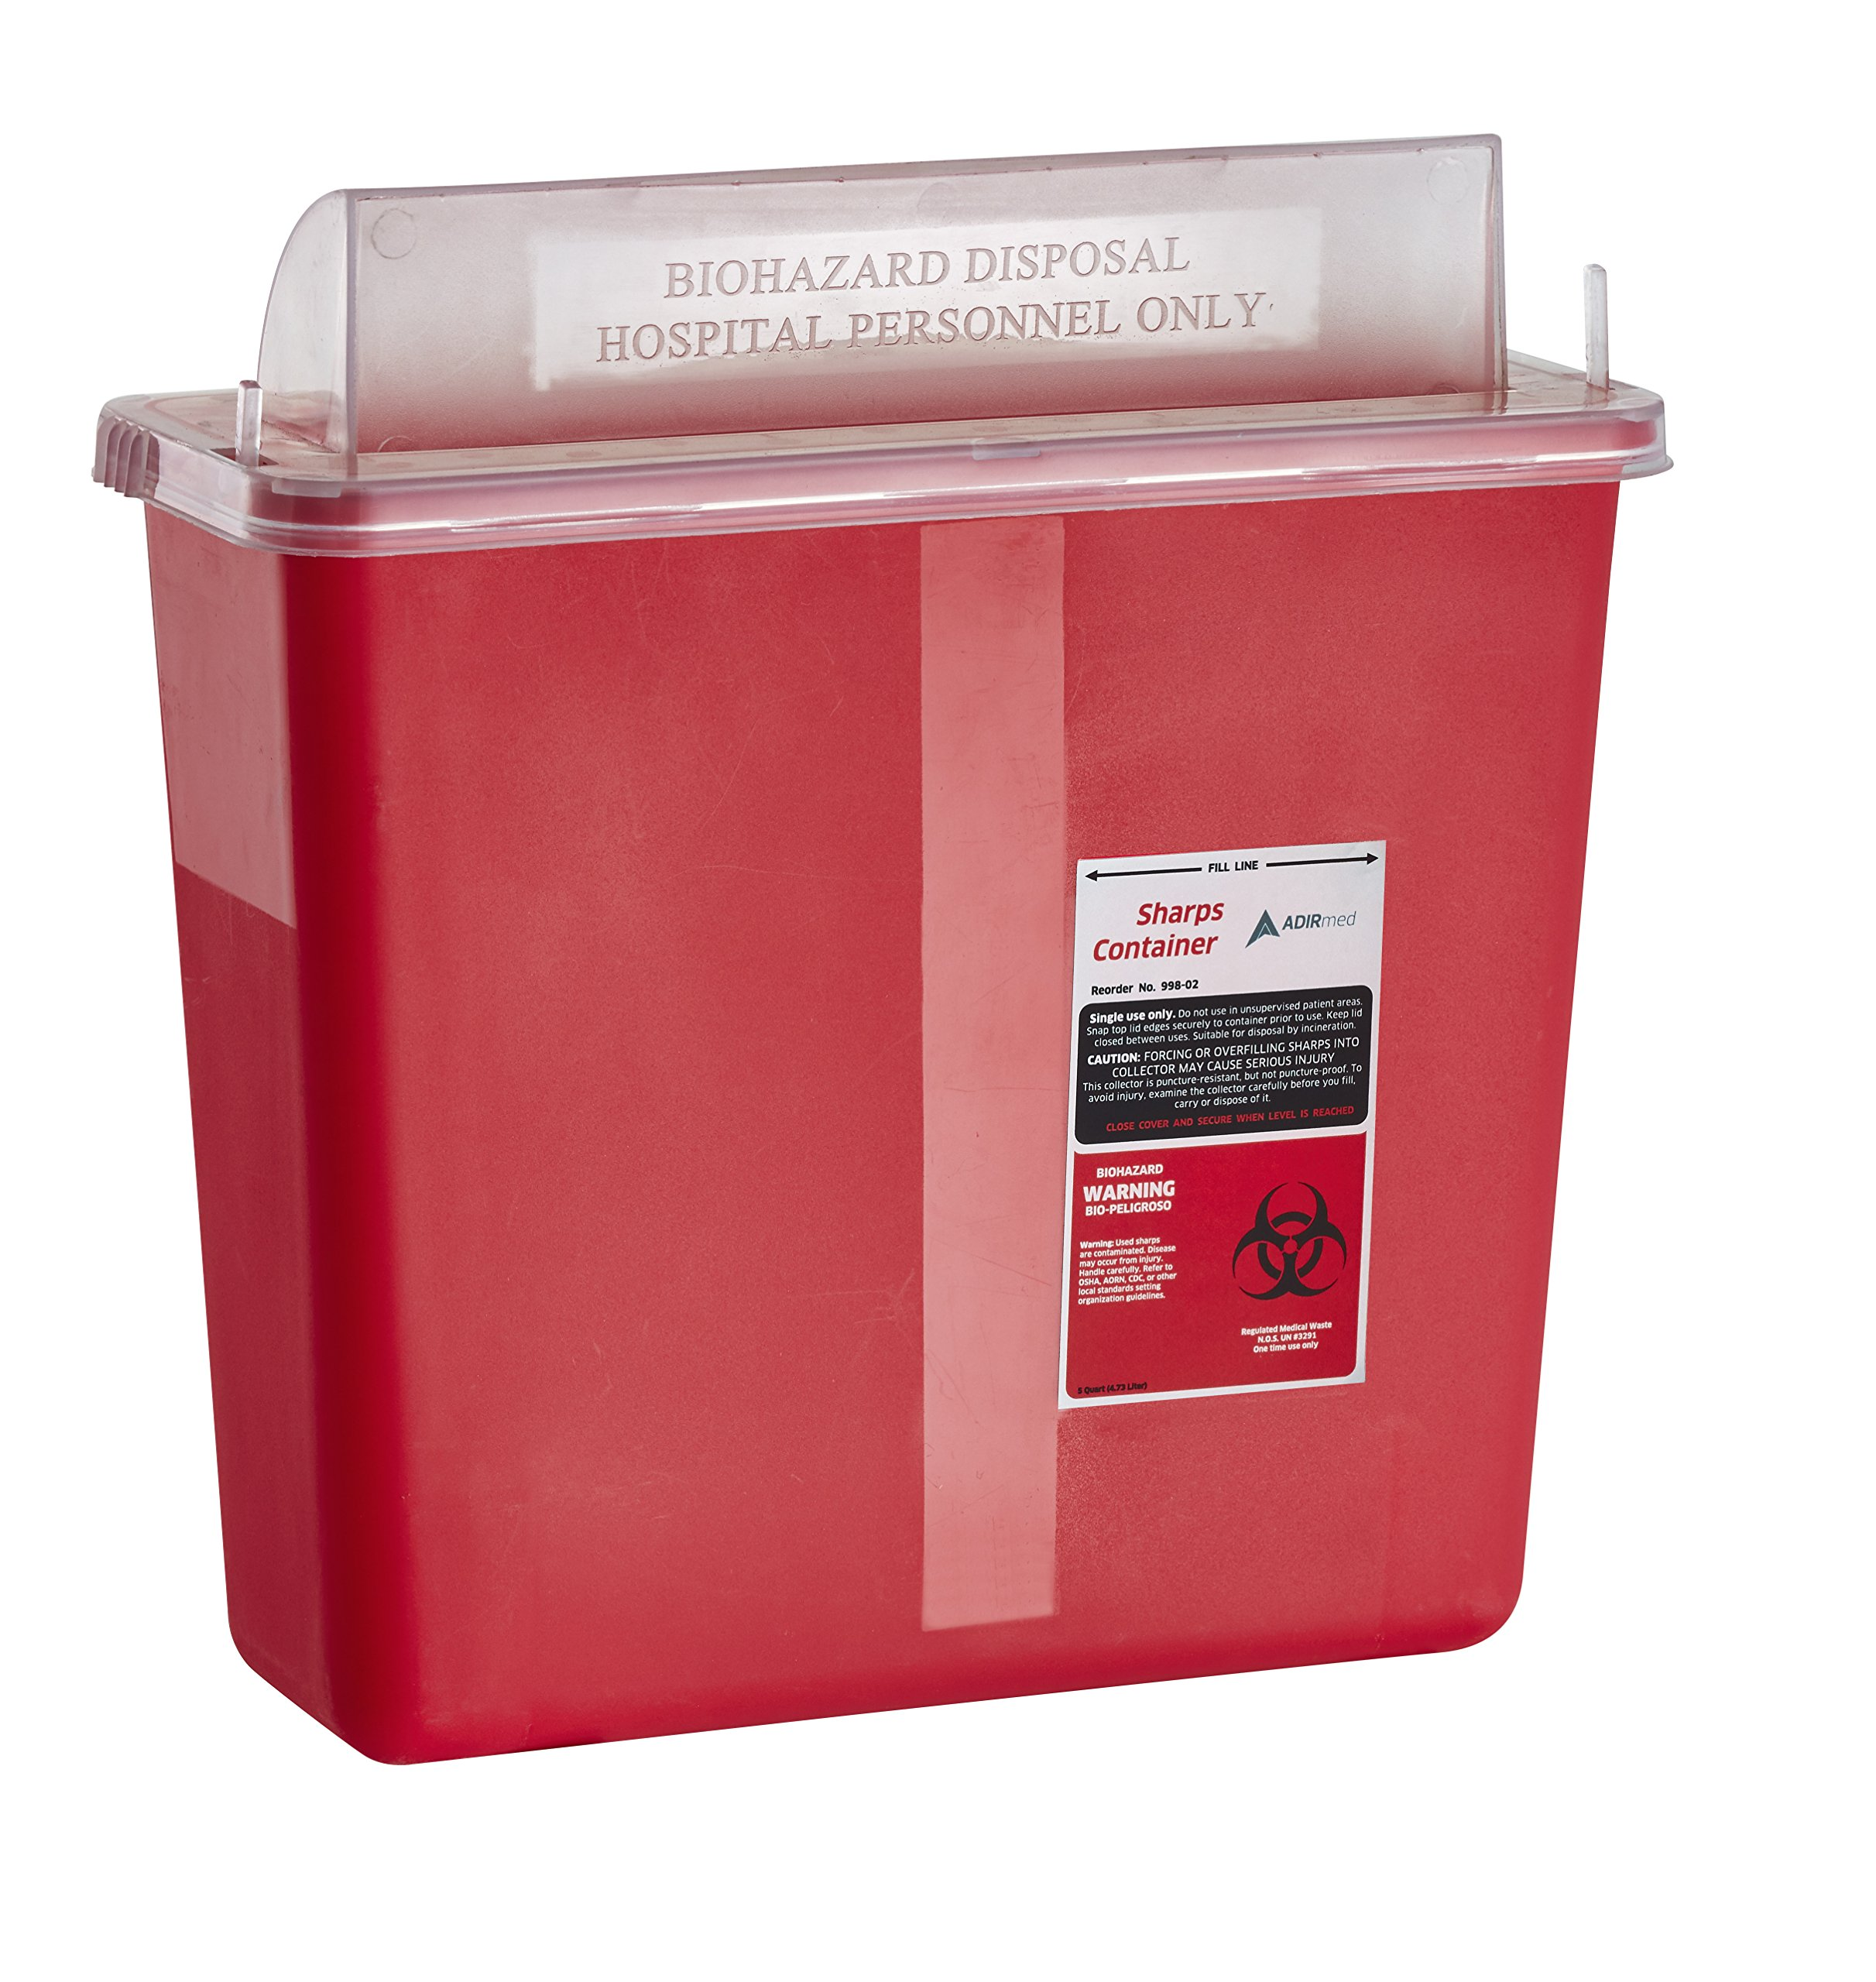 AdirMed Sharps & Needle Biohazard Disposal Container - 5 Quart - Mailbox Style Horizontal Lid - 1 Pack by Adir Med (Image #1)